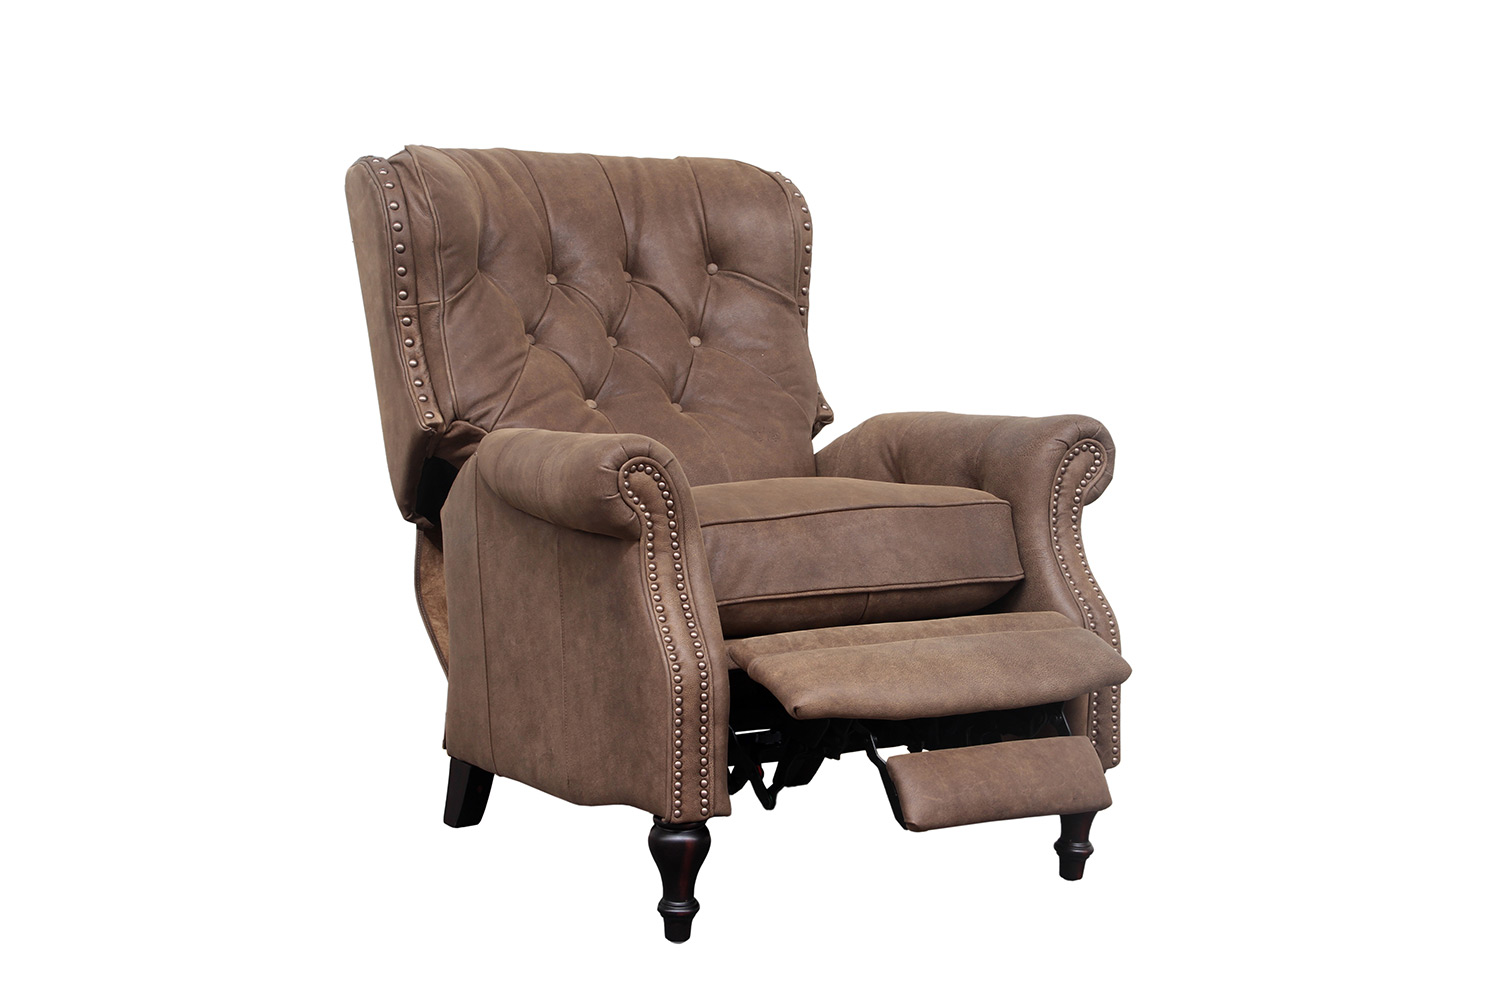 Barcalounger KendAll Recliner Chair - Sanded Dark Bomber/Top Grain Leather